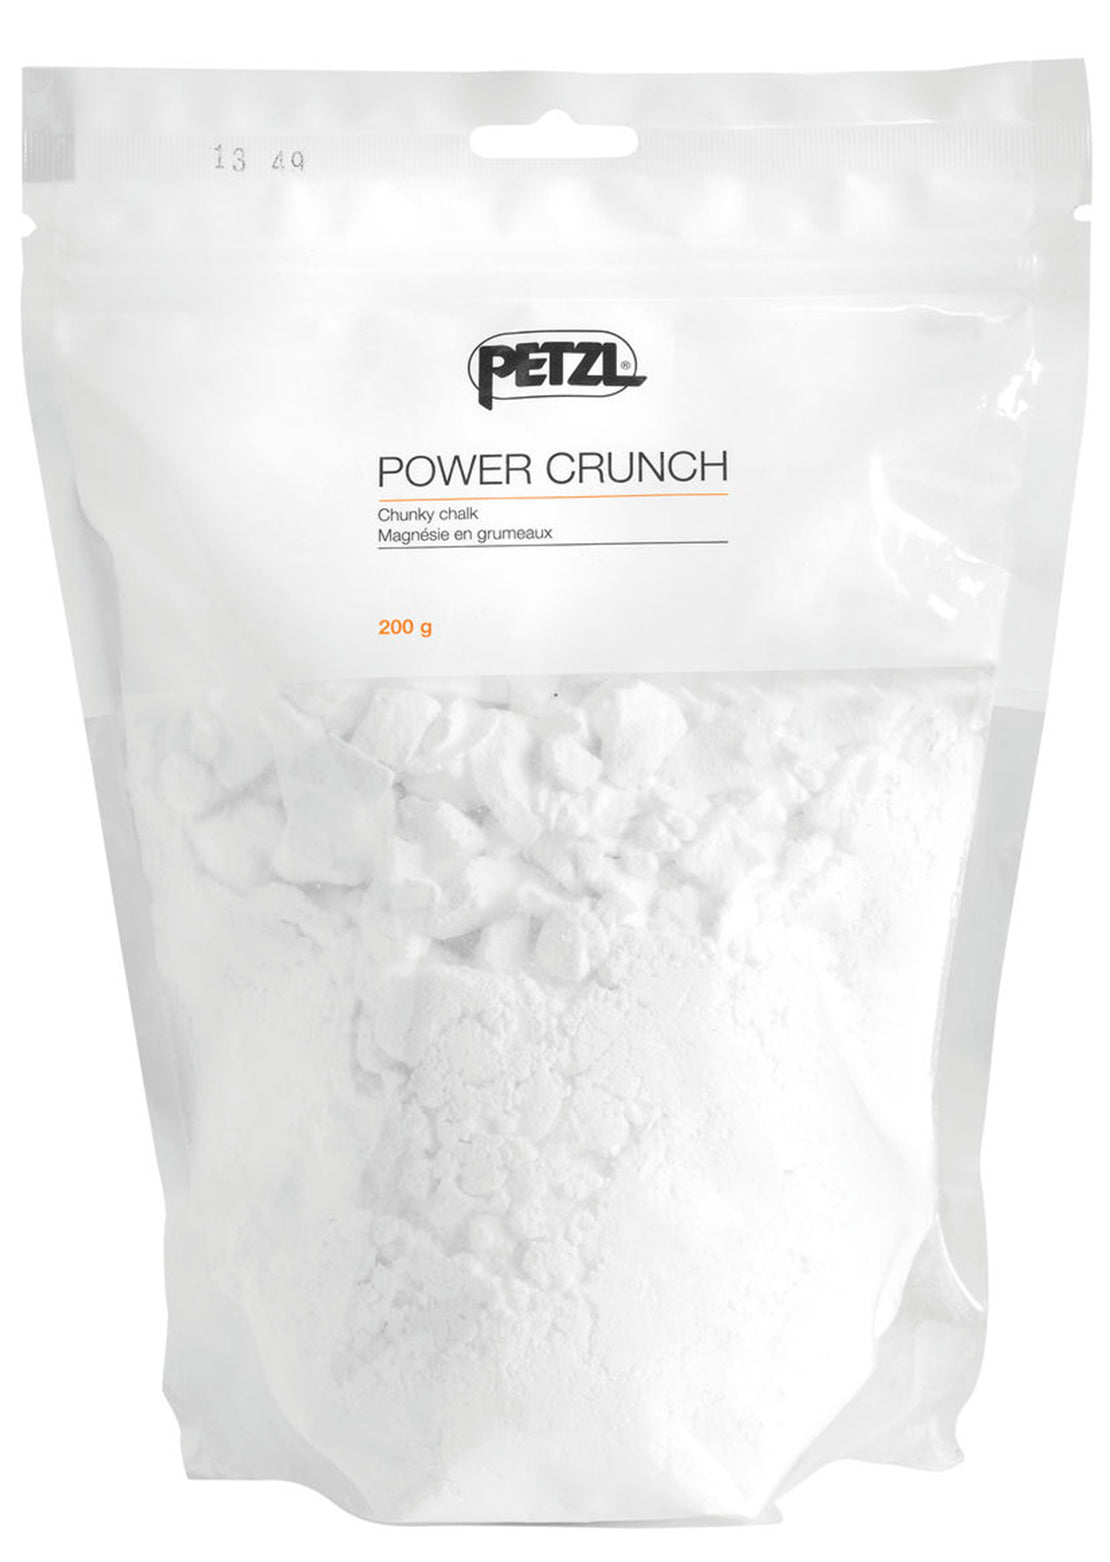 Petzl Power Crunch Climbing Chalk - 200g